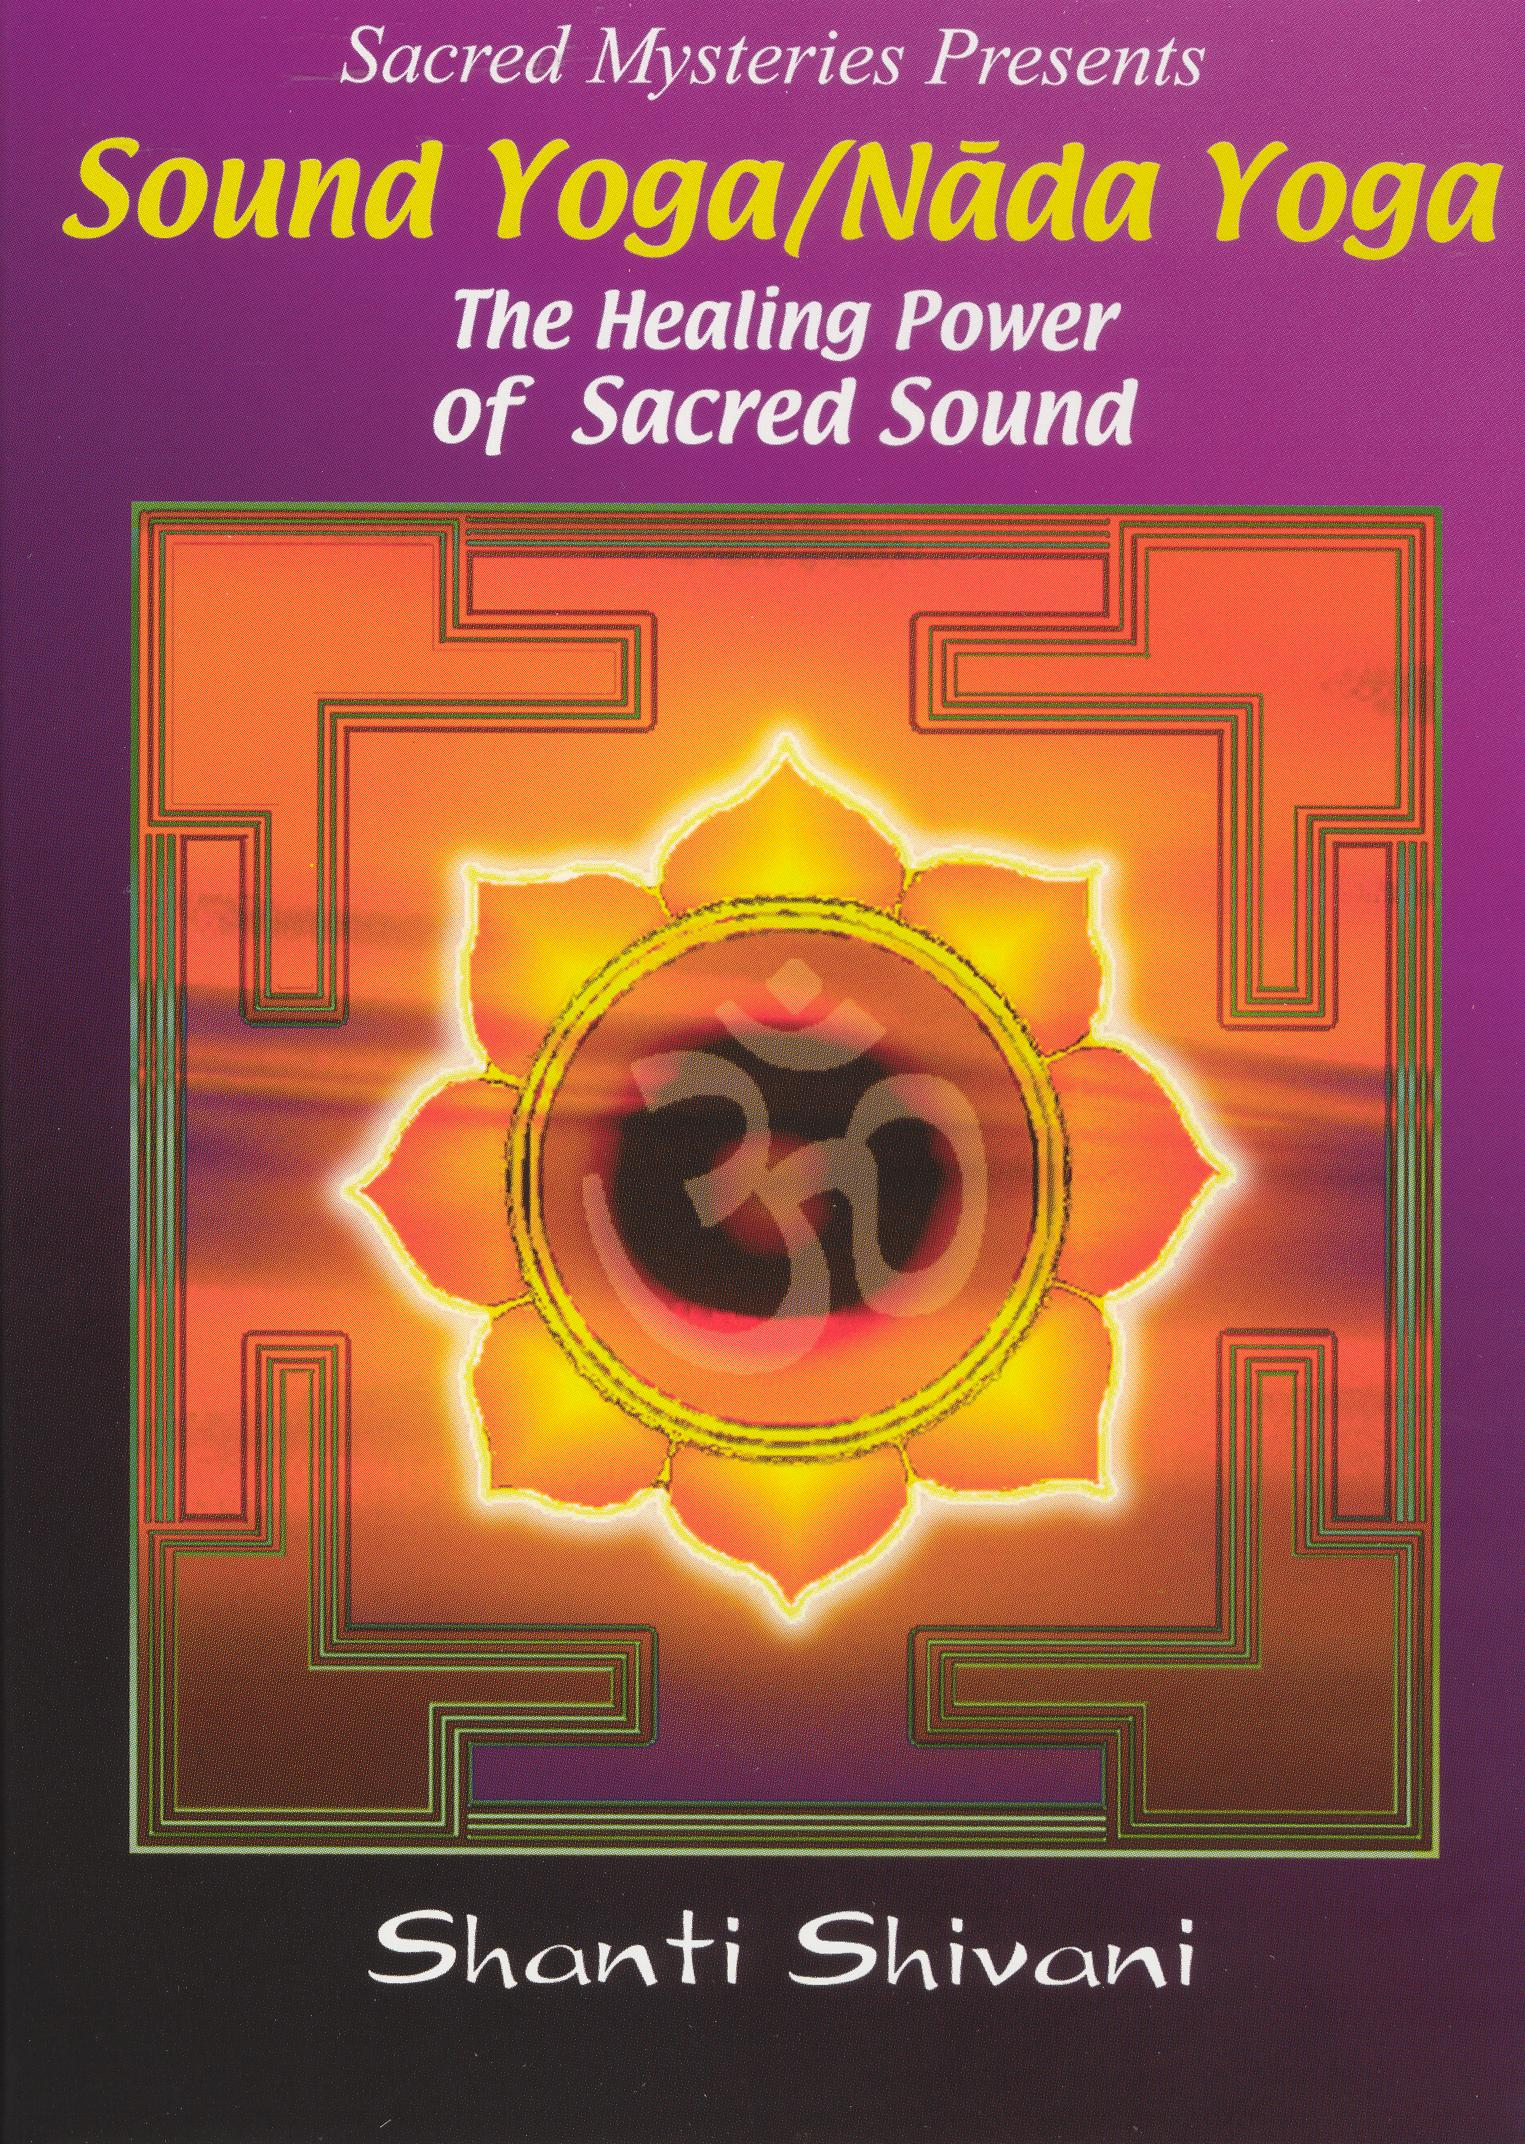 Sound Yoga/Nada Yoga: The Healing Power of Sacred Sound